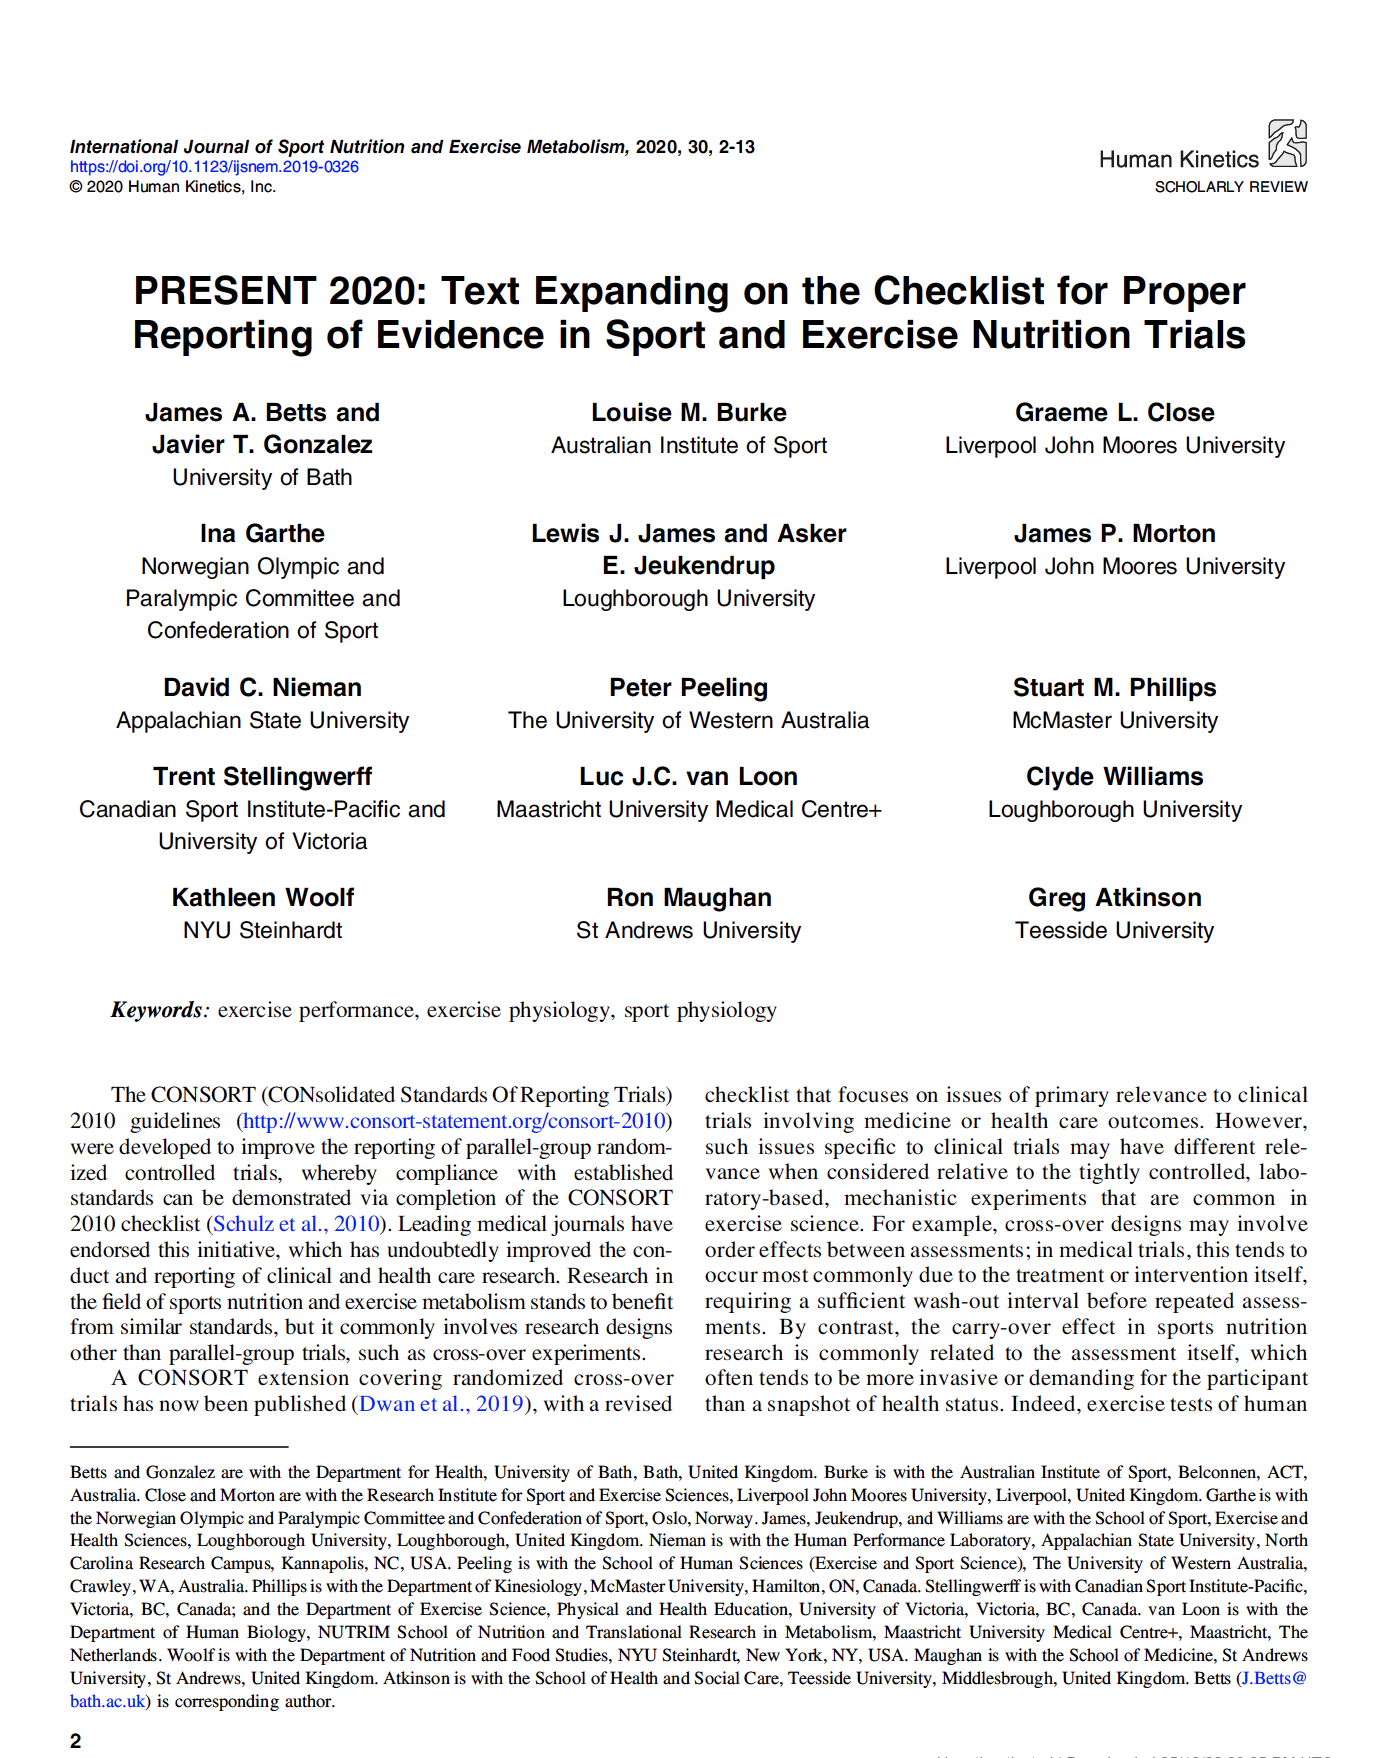 PRESENT 2020: Text Expanding on the Checklist for Proper Reporting of Evidence in Sport and Exercise